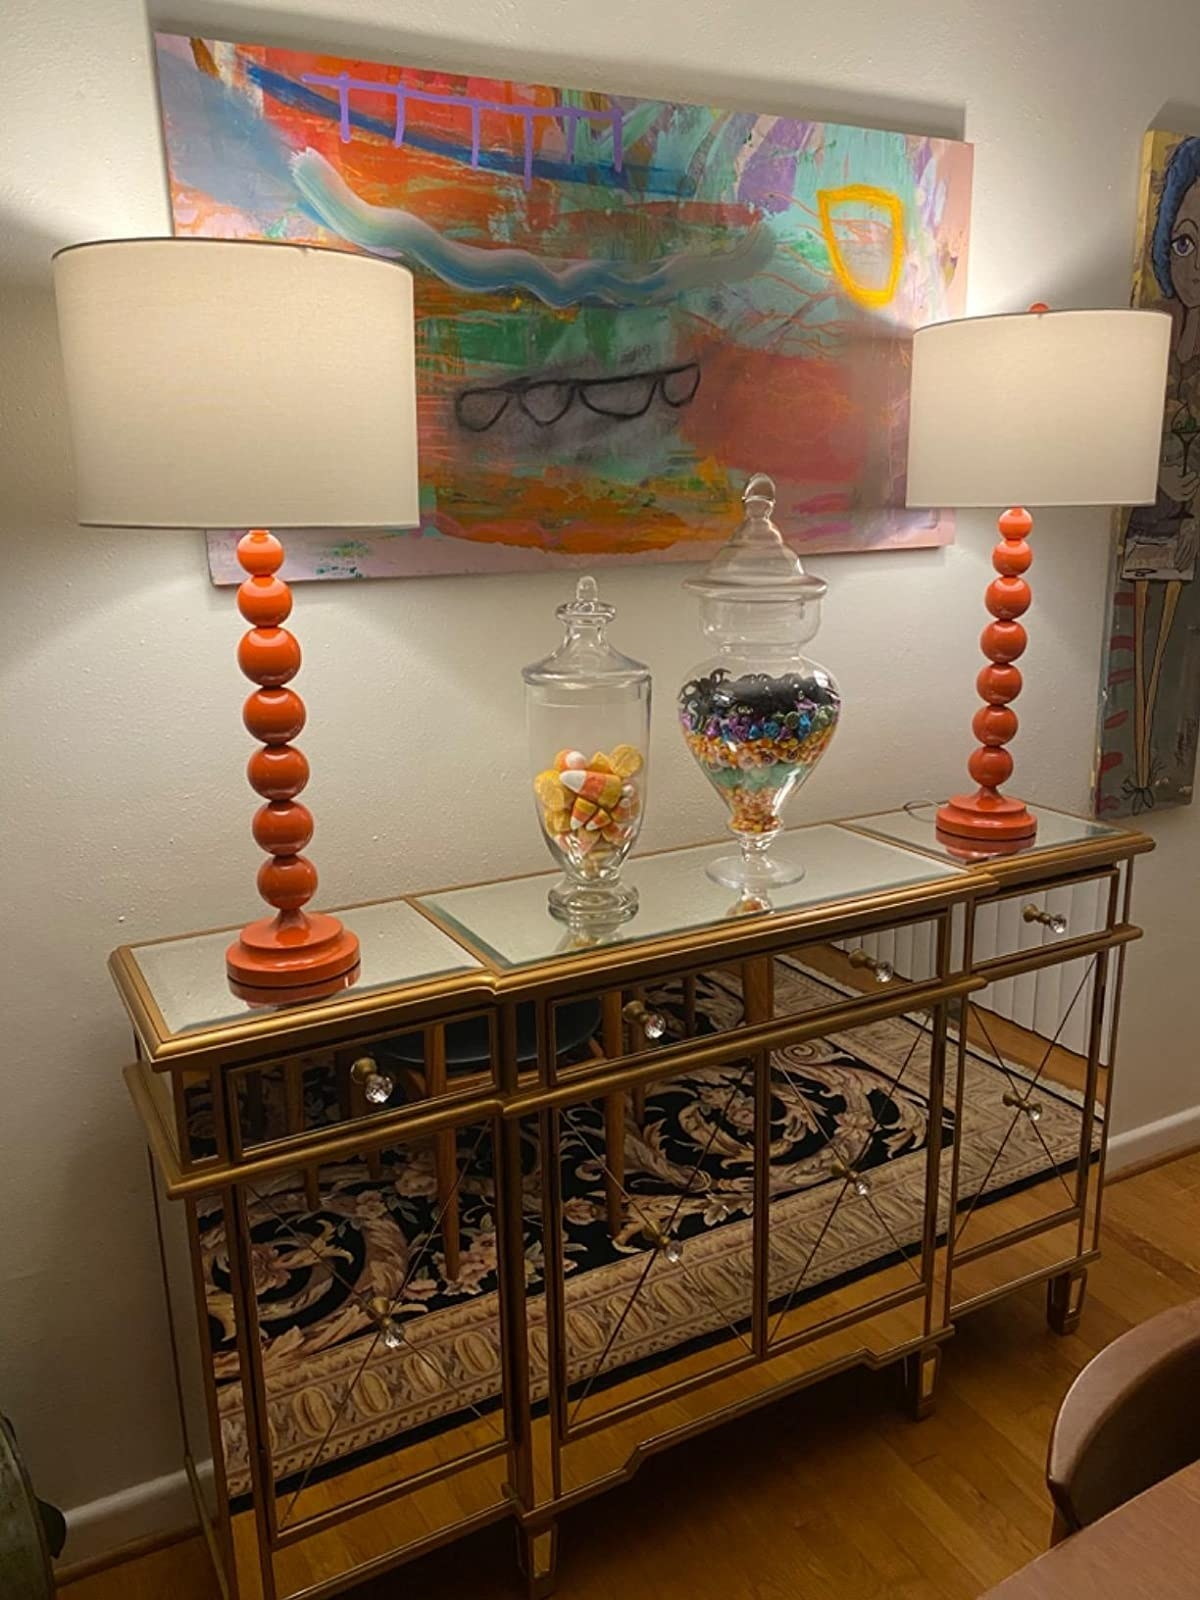 Reviewer's lamps sit on a mirrored console table